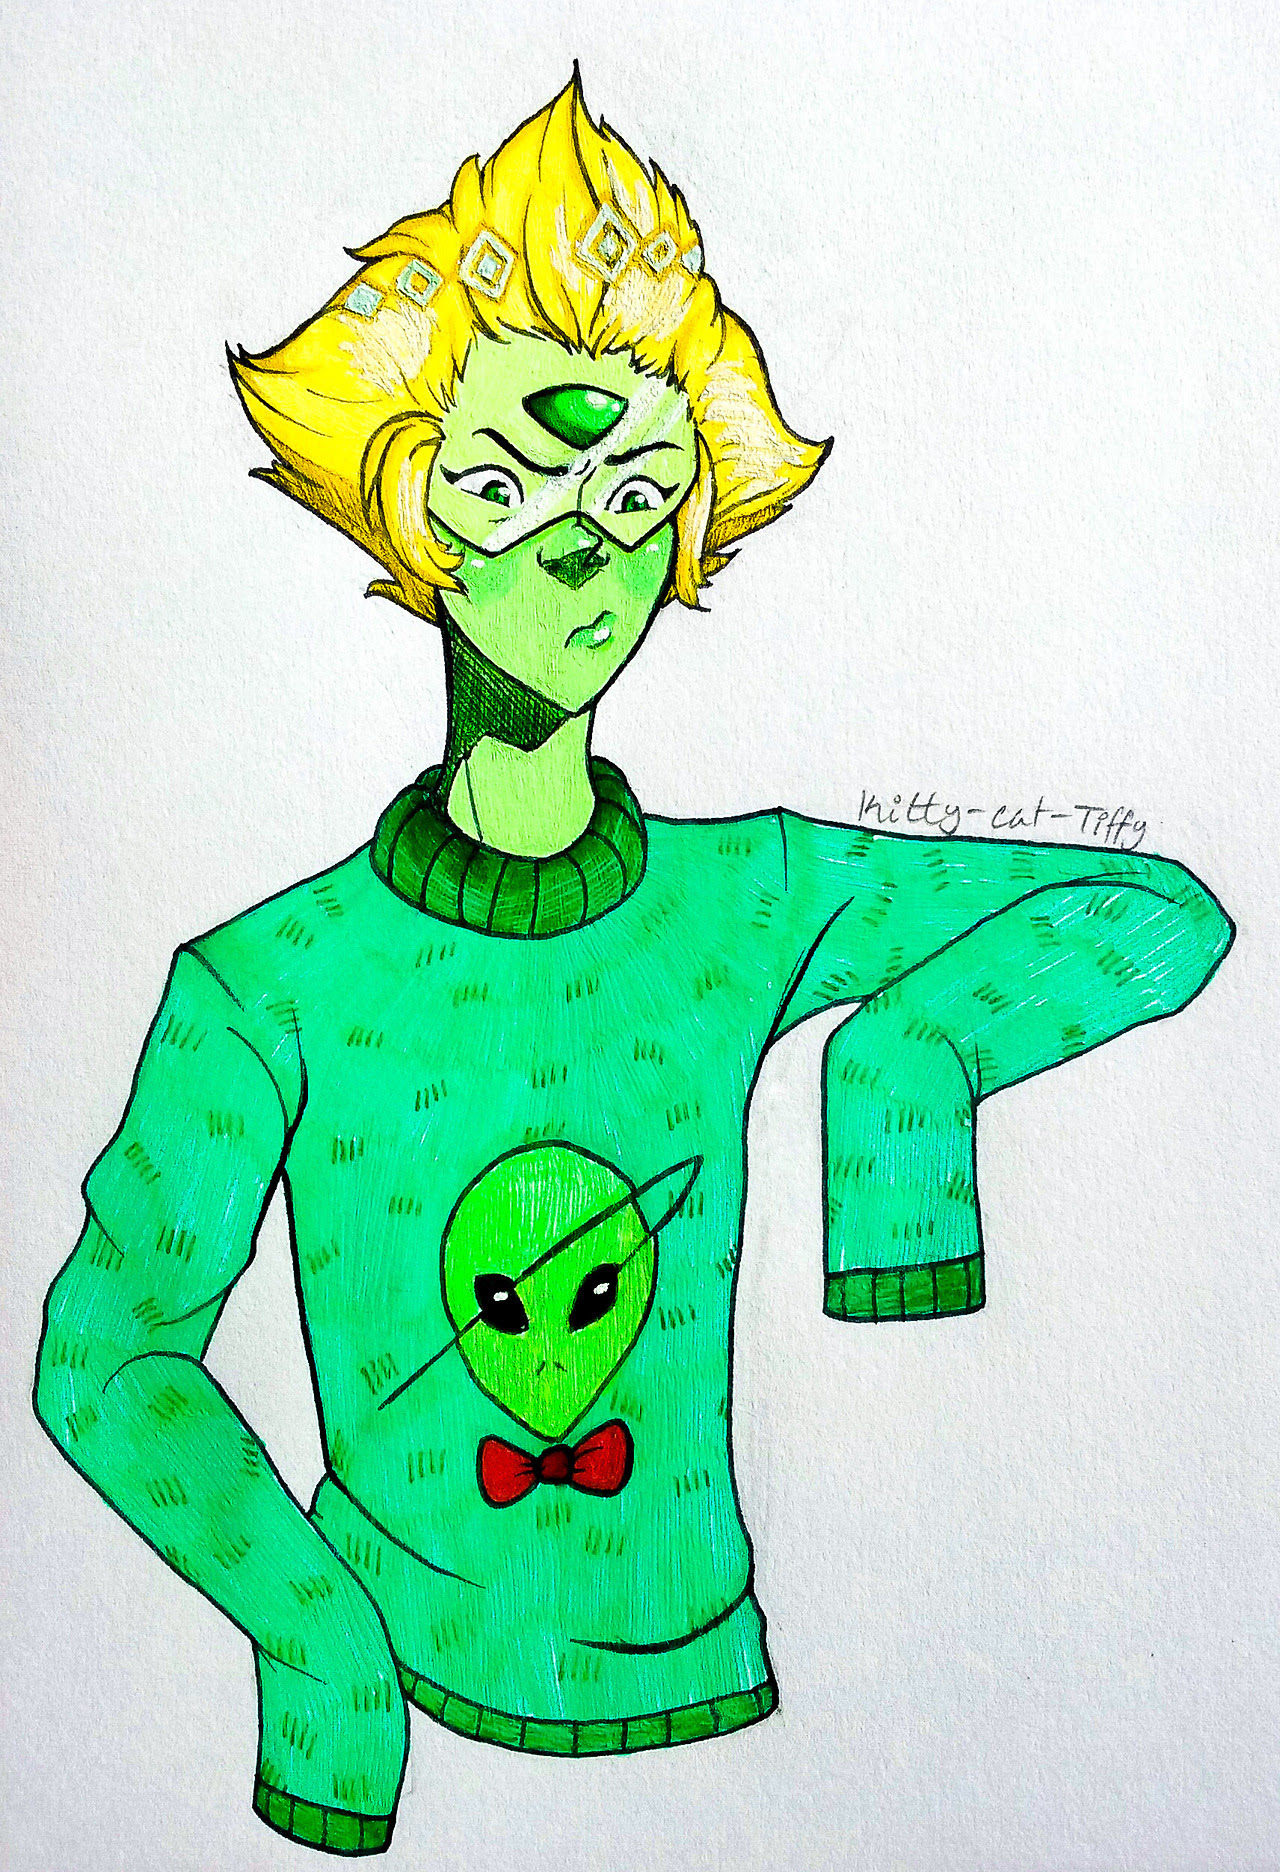 Inktober day 6 - Alien Mean green bean👽